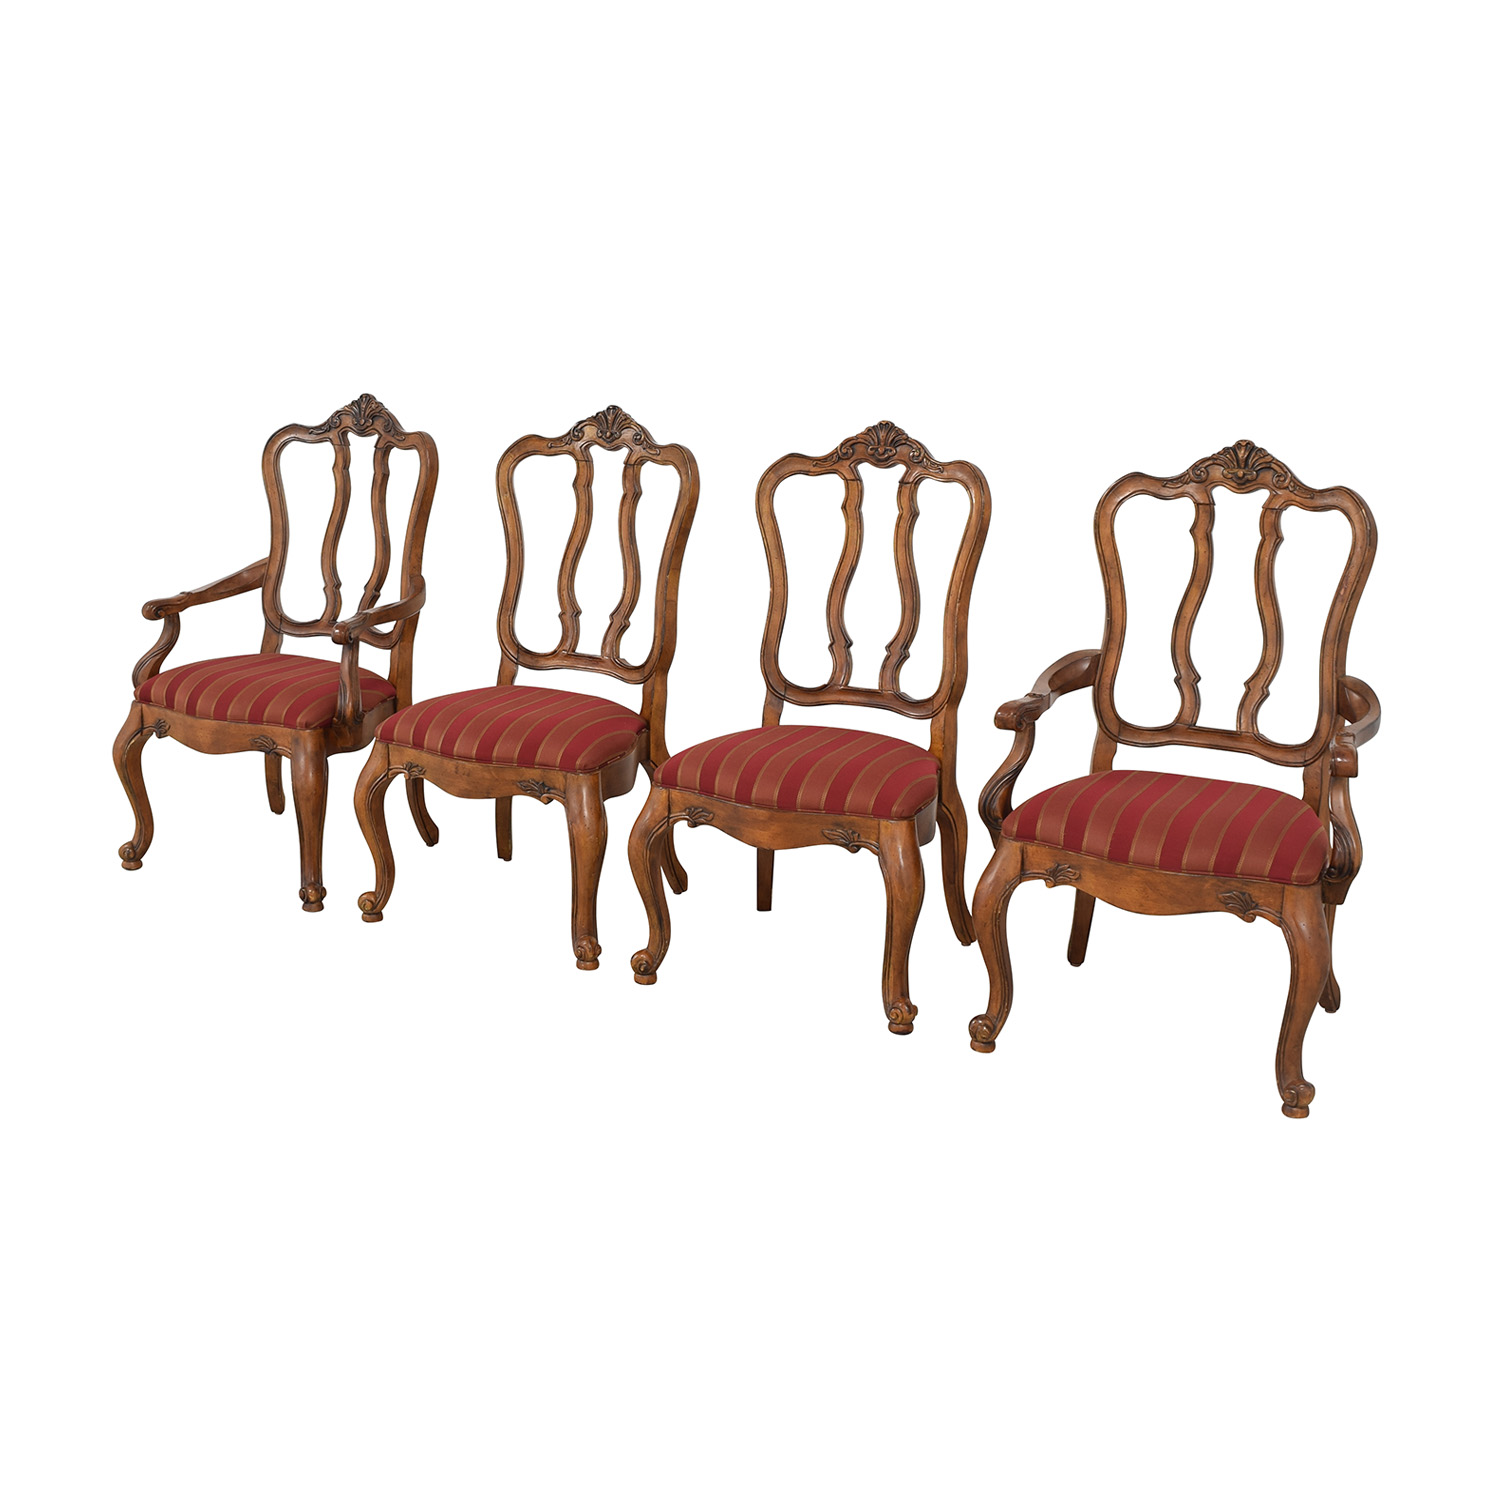 Ethan Allen Ethan Allen Tuscany Augustine Dining Chairs price